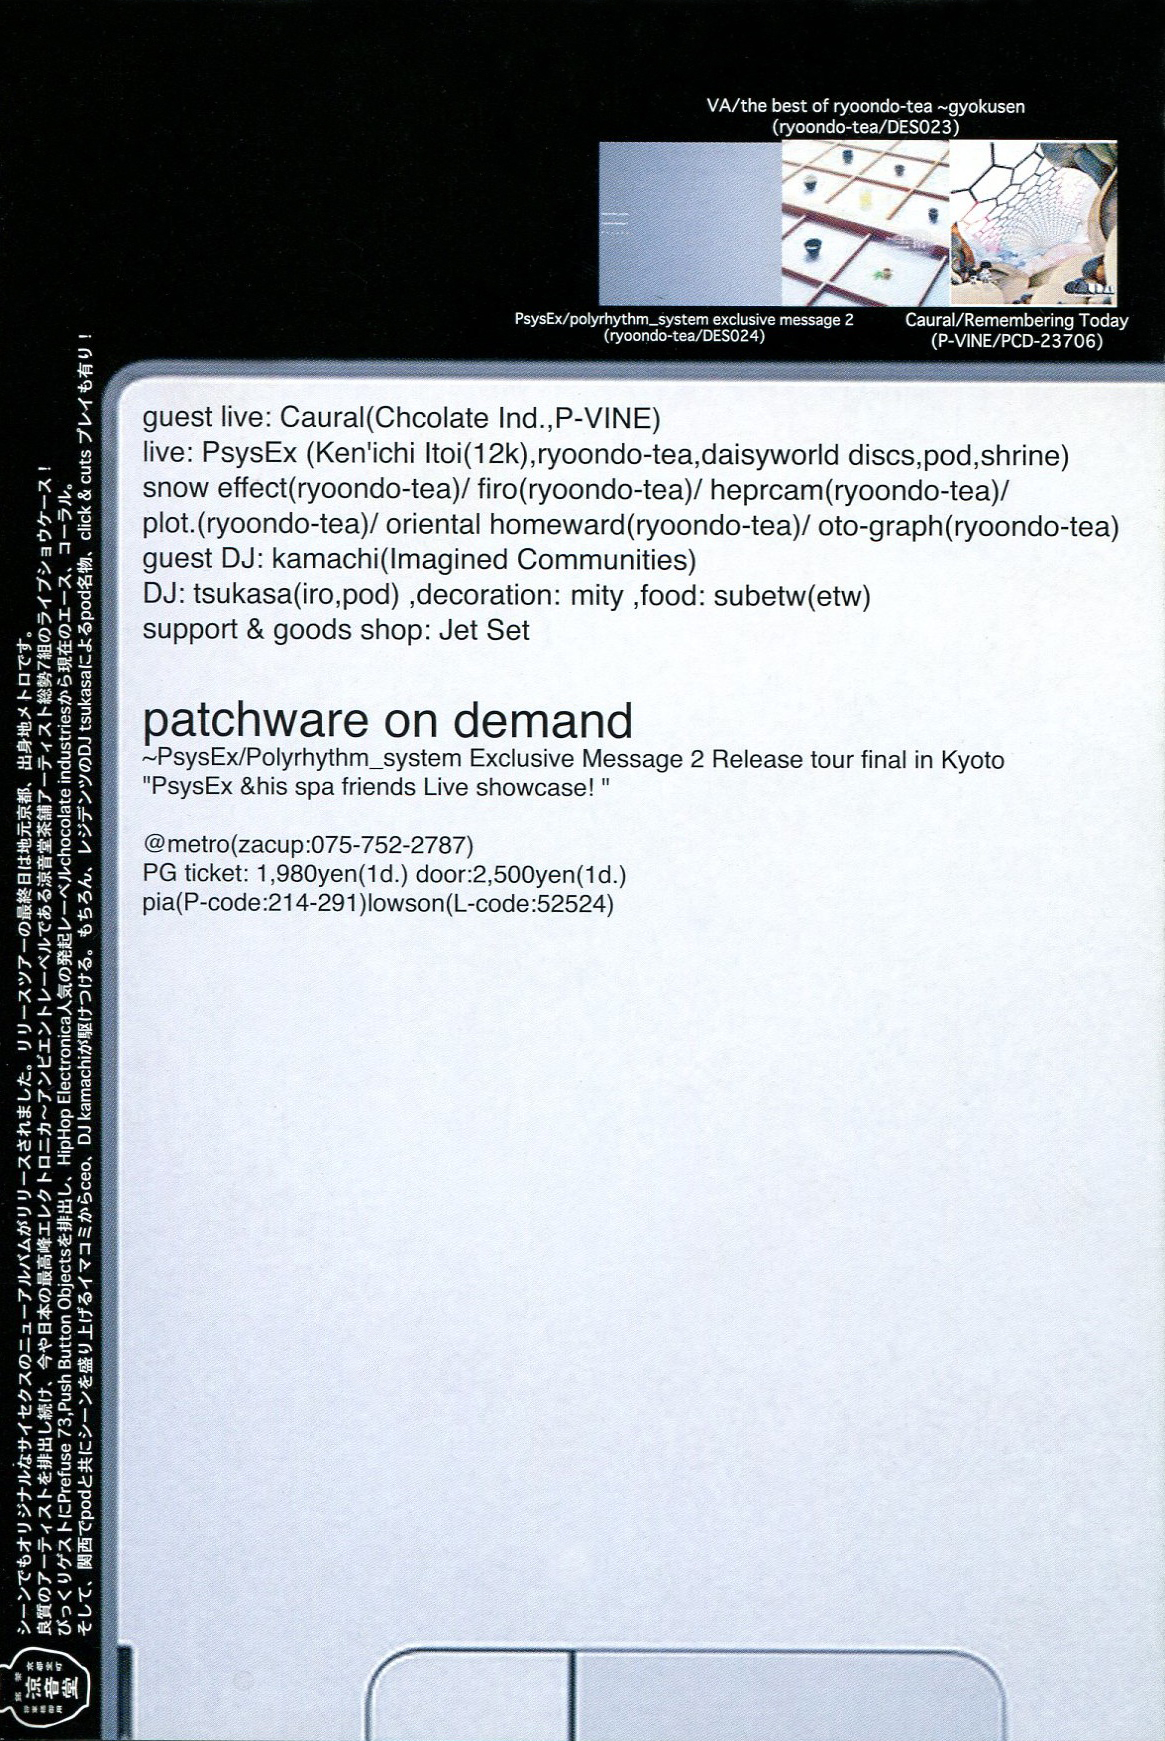 11-28-patchware-back.jpg